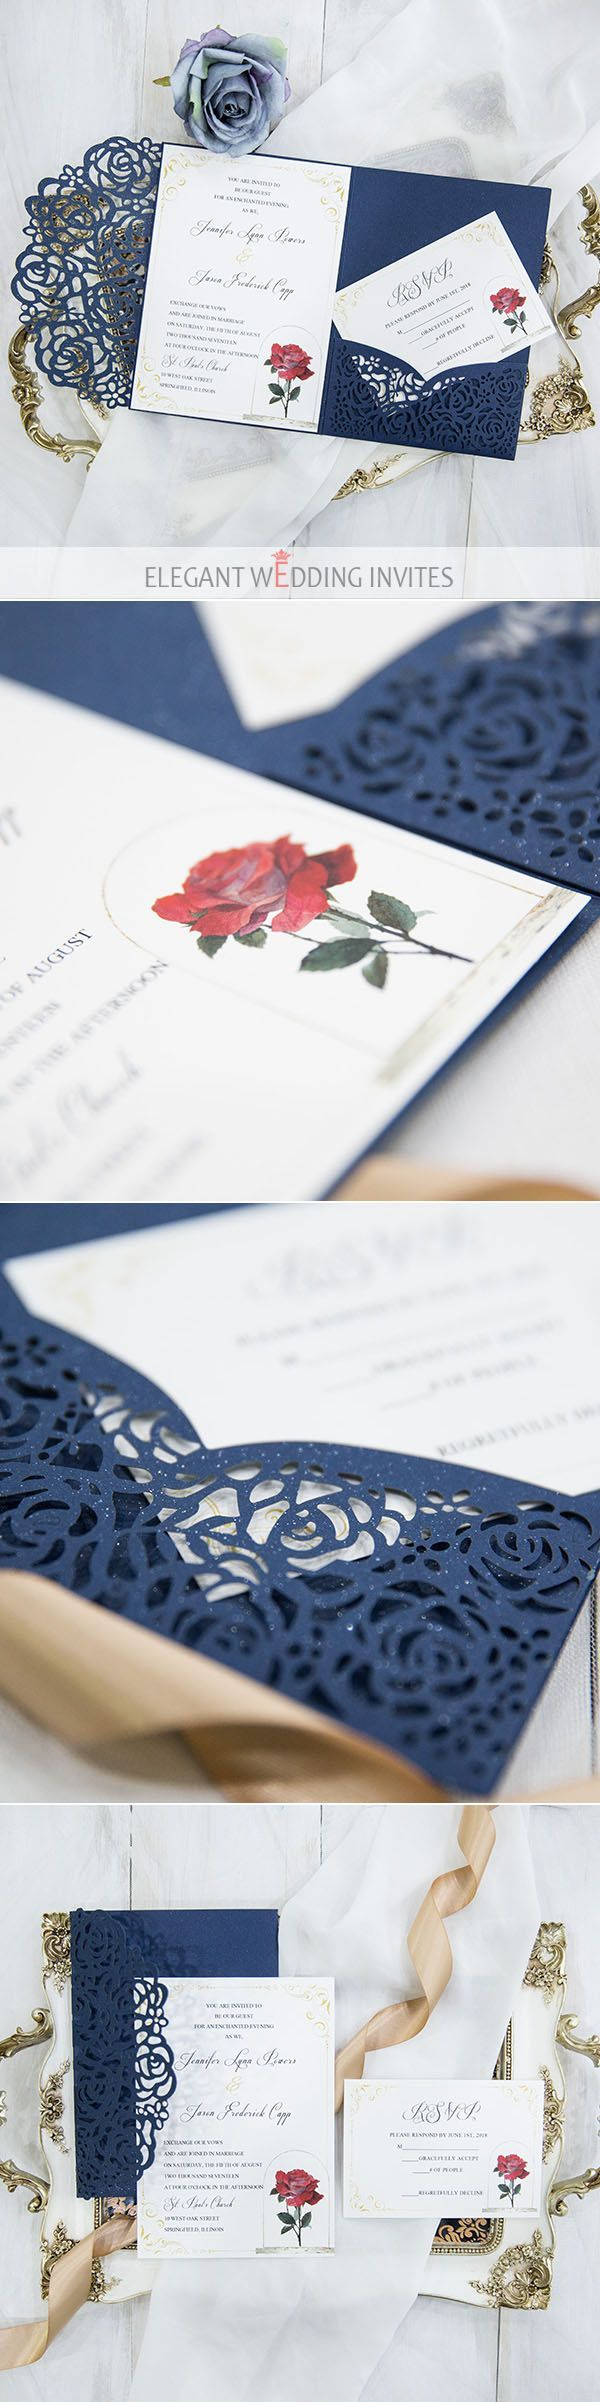 Beauty and the Beast film inspired navy blue laser cut pocket wedding invitation suites